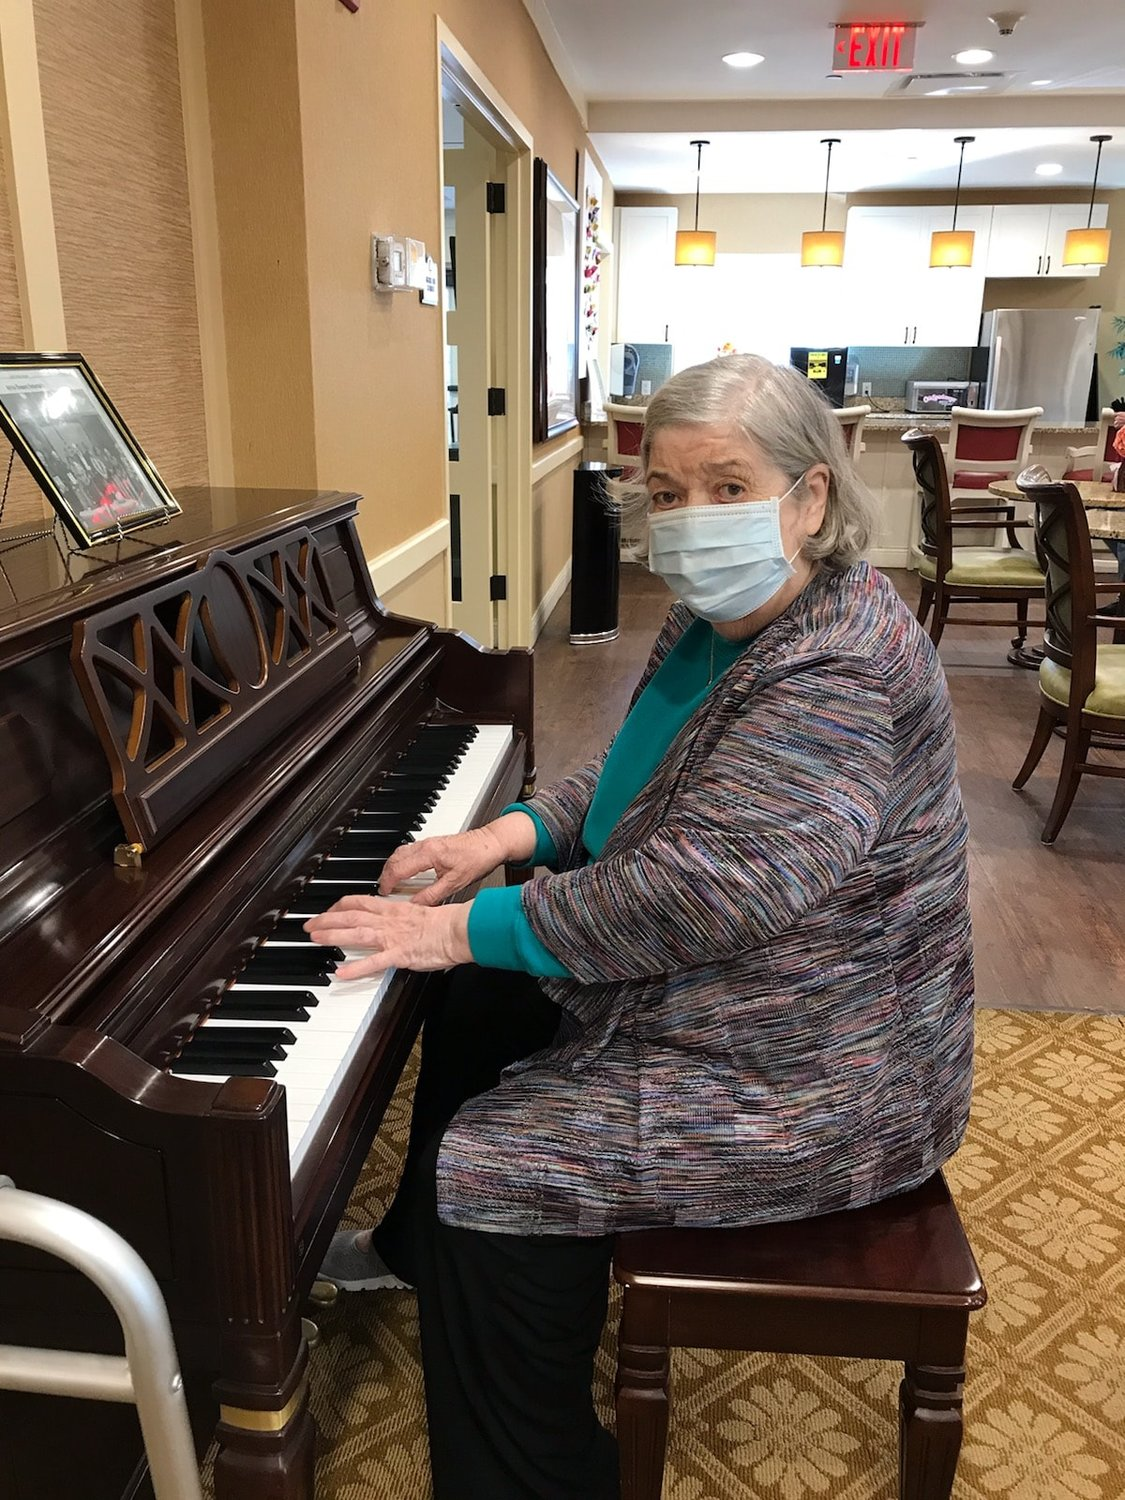 Atria Glen Cove resident Josephine Gencorelli often provides musical entertainment for fellow residents at the pianist.